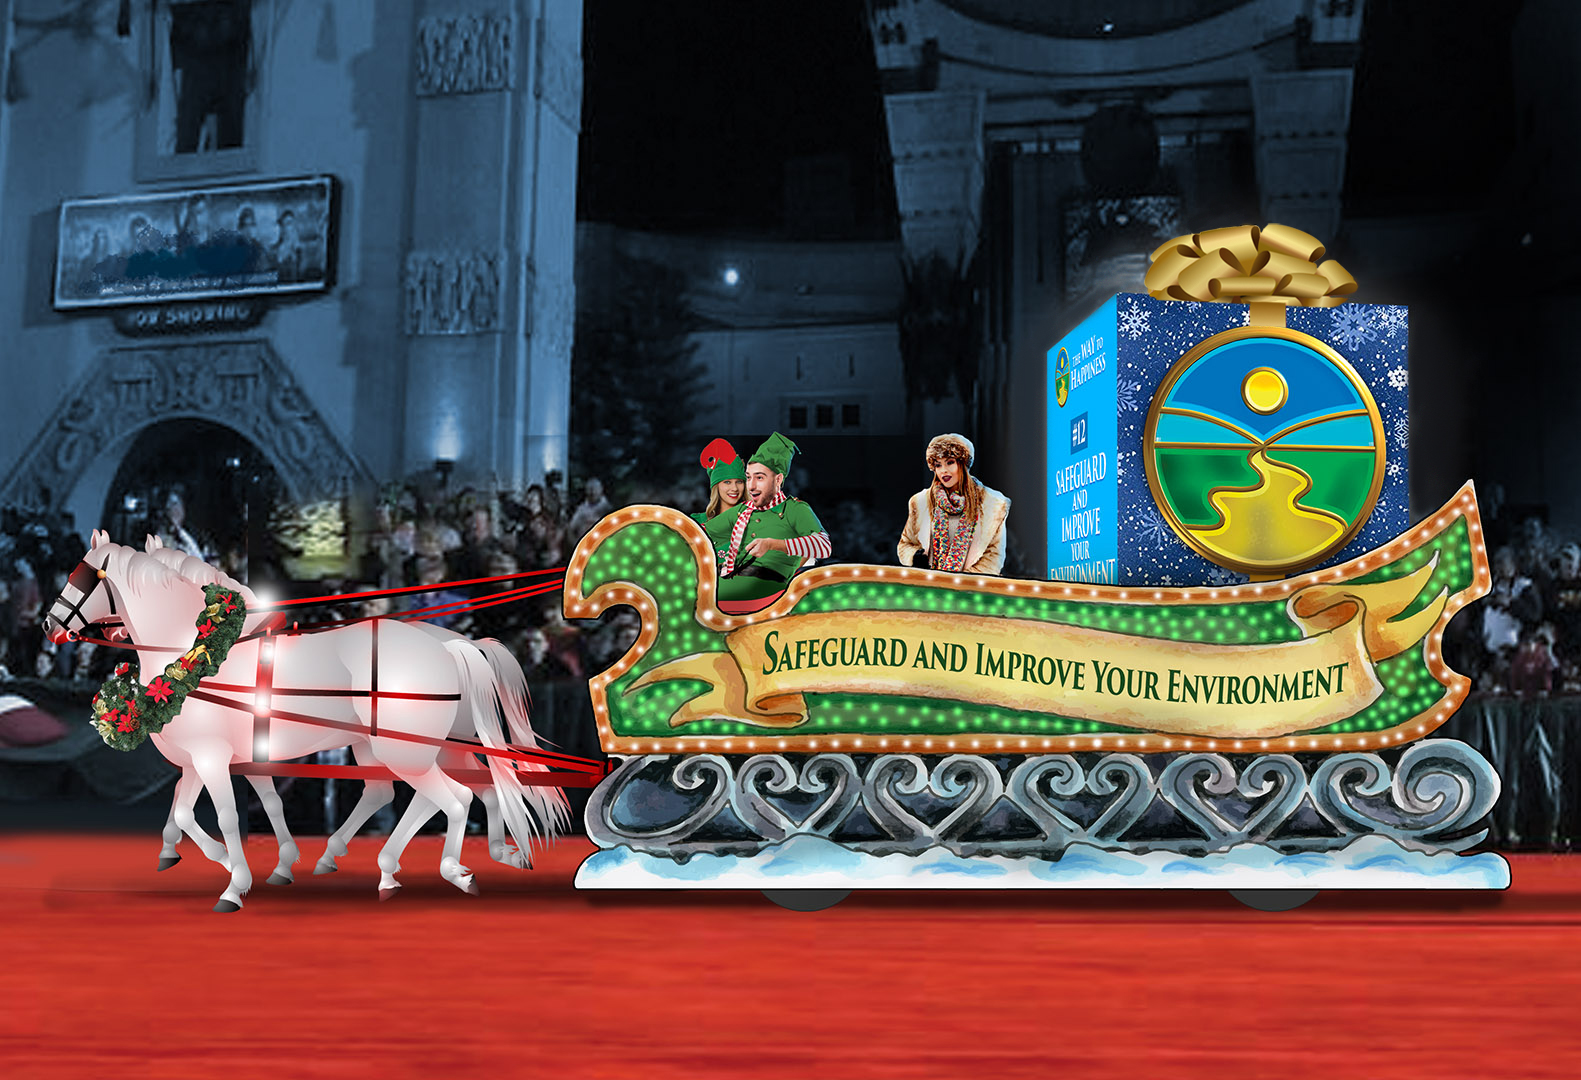 Hollywood_Parade_Float_concept